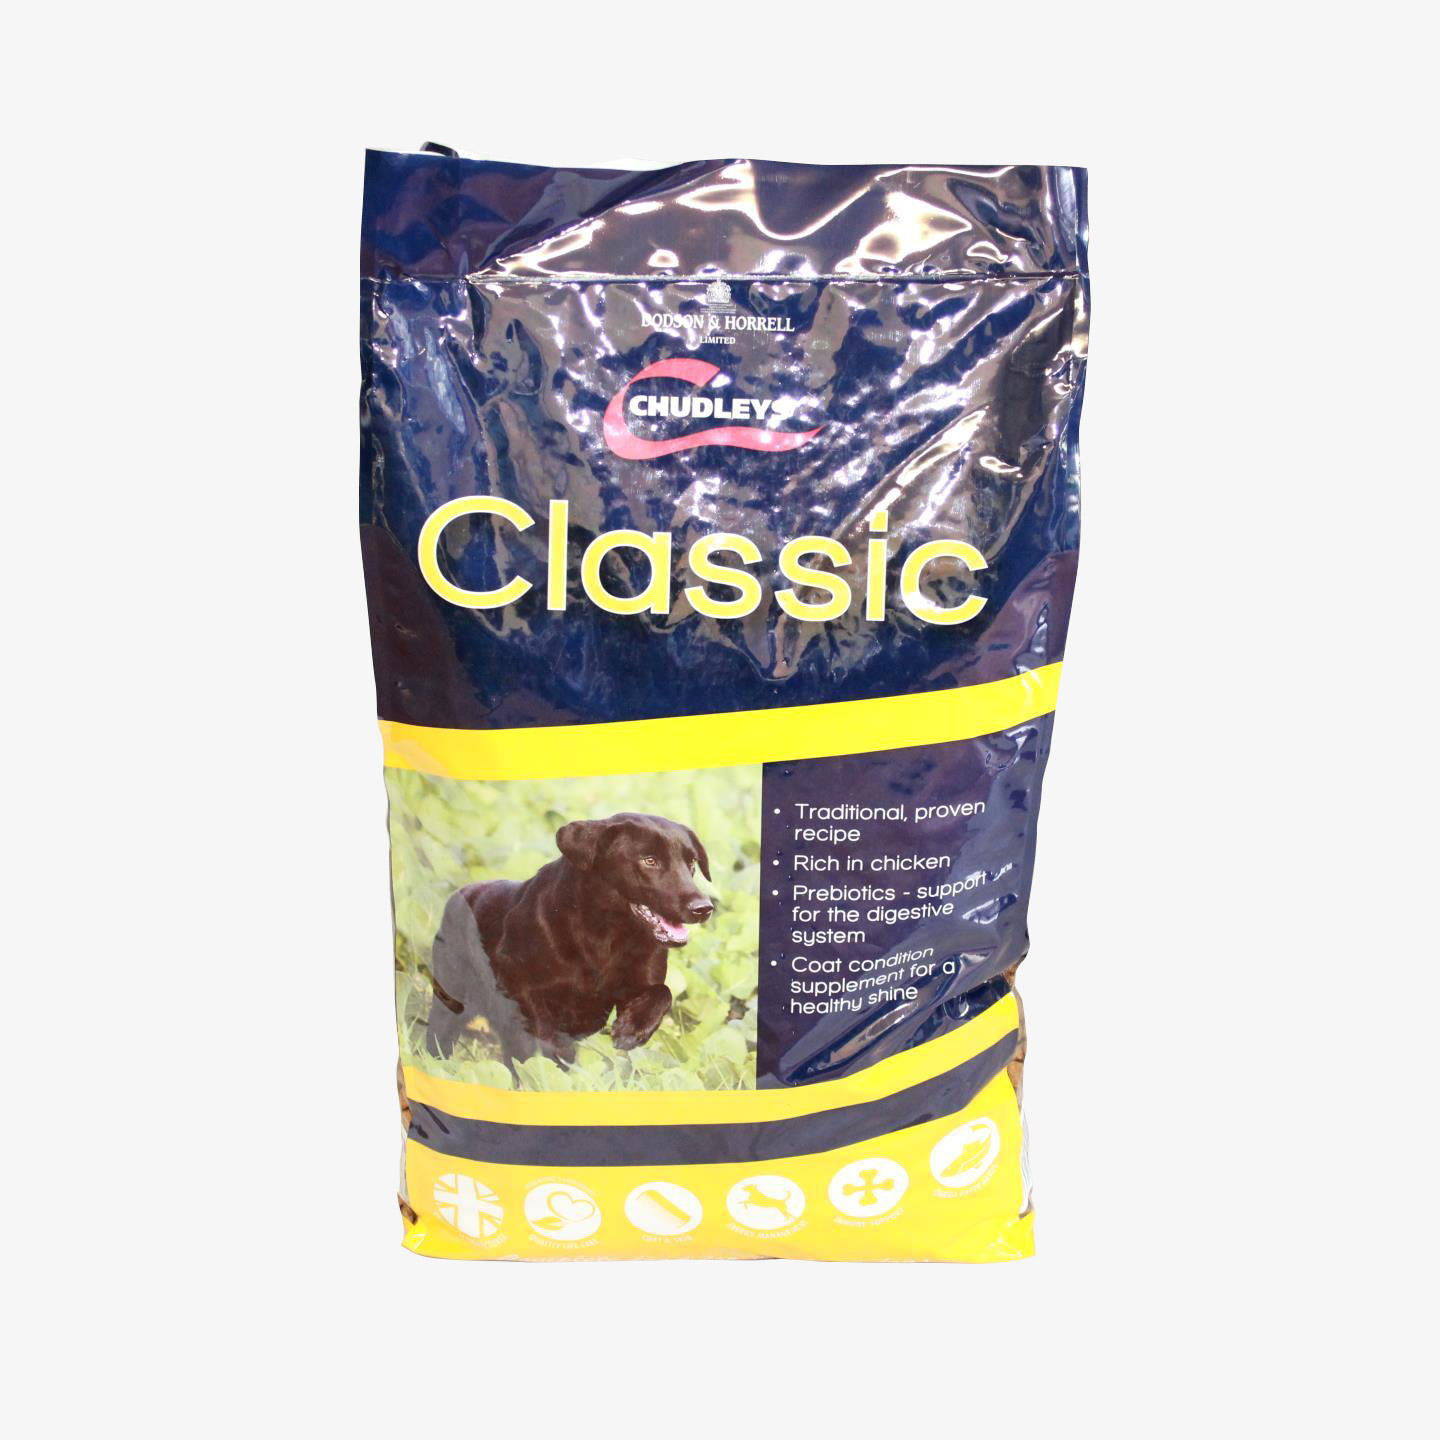 Pet Feed Suppliers Ringwood Fencing Pet Supplies Cheshire